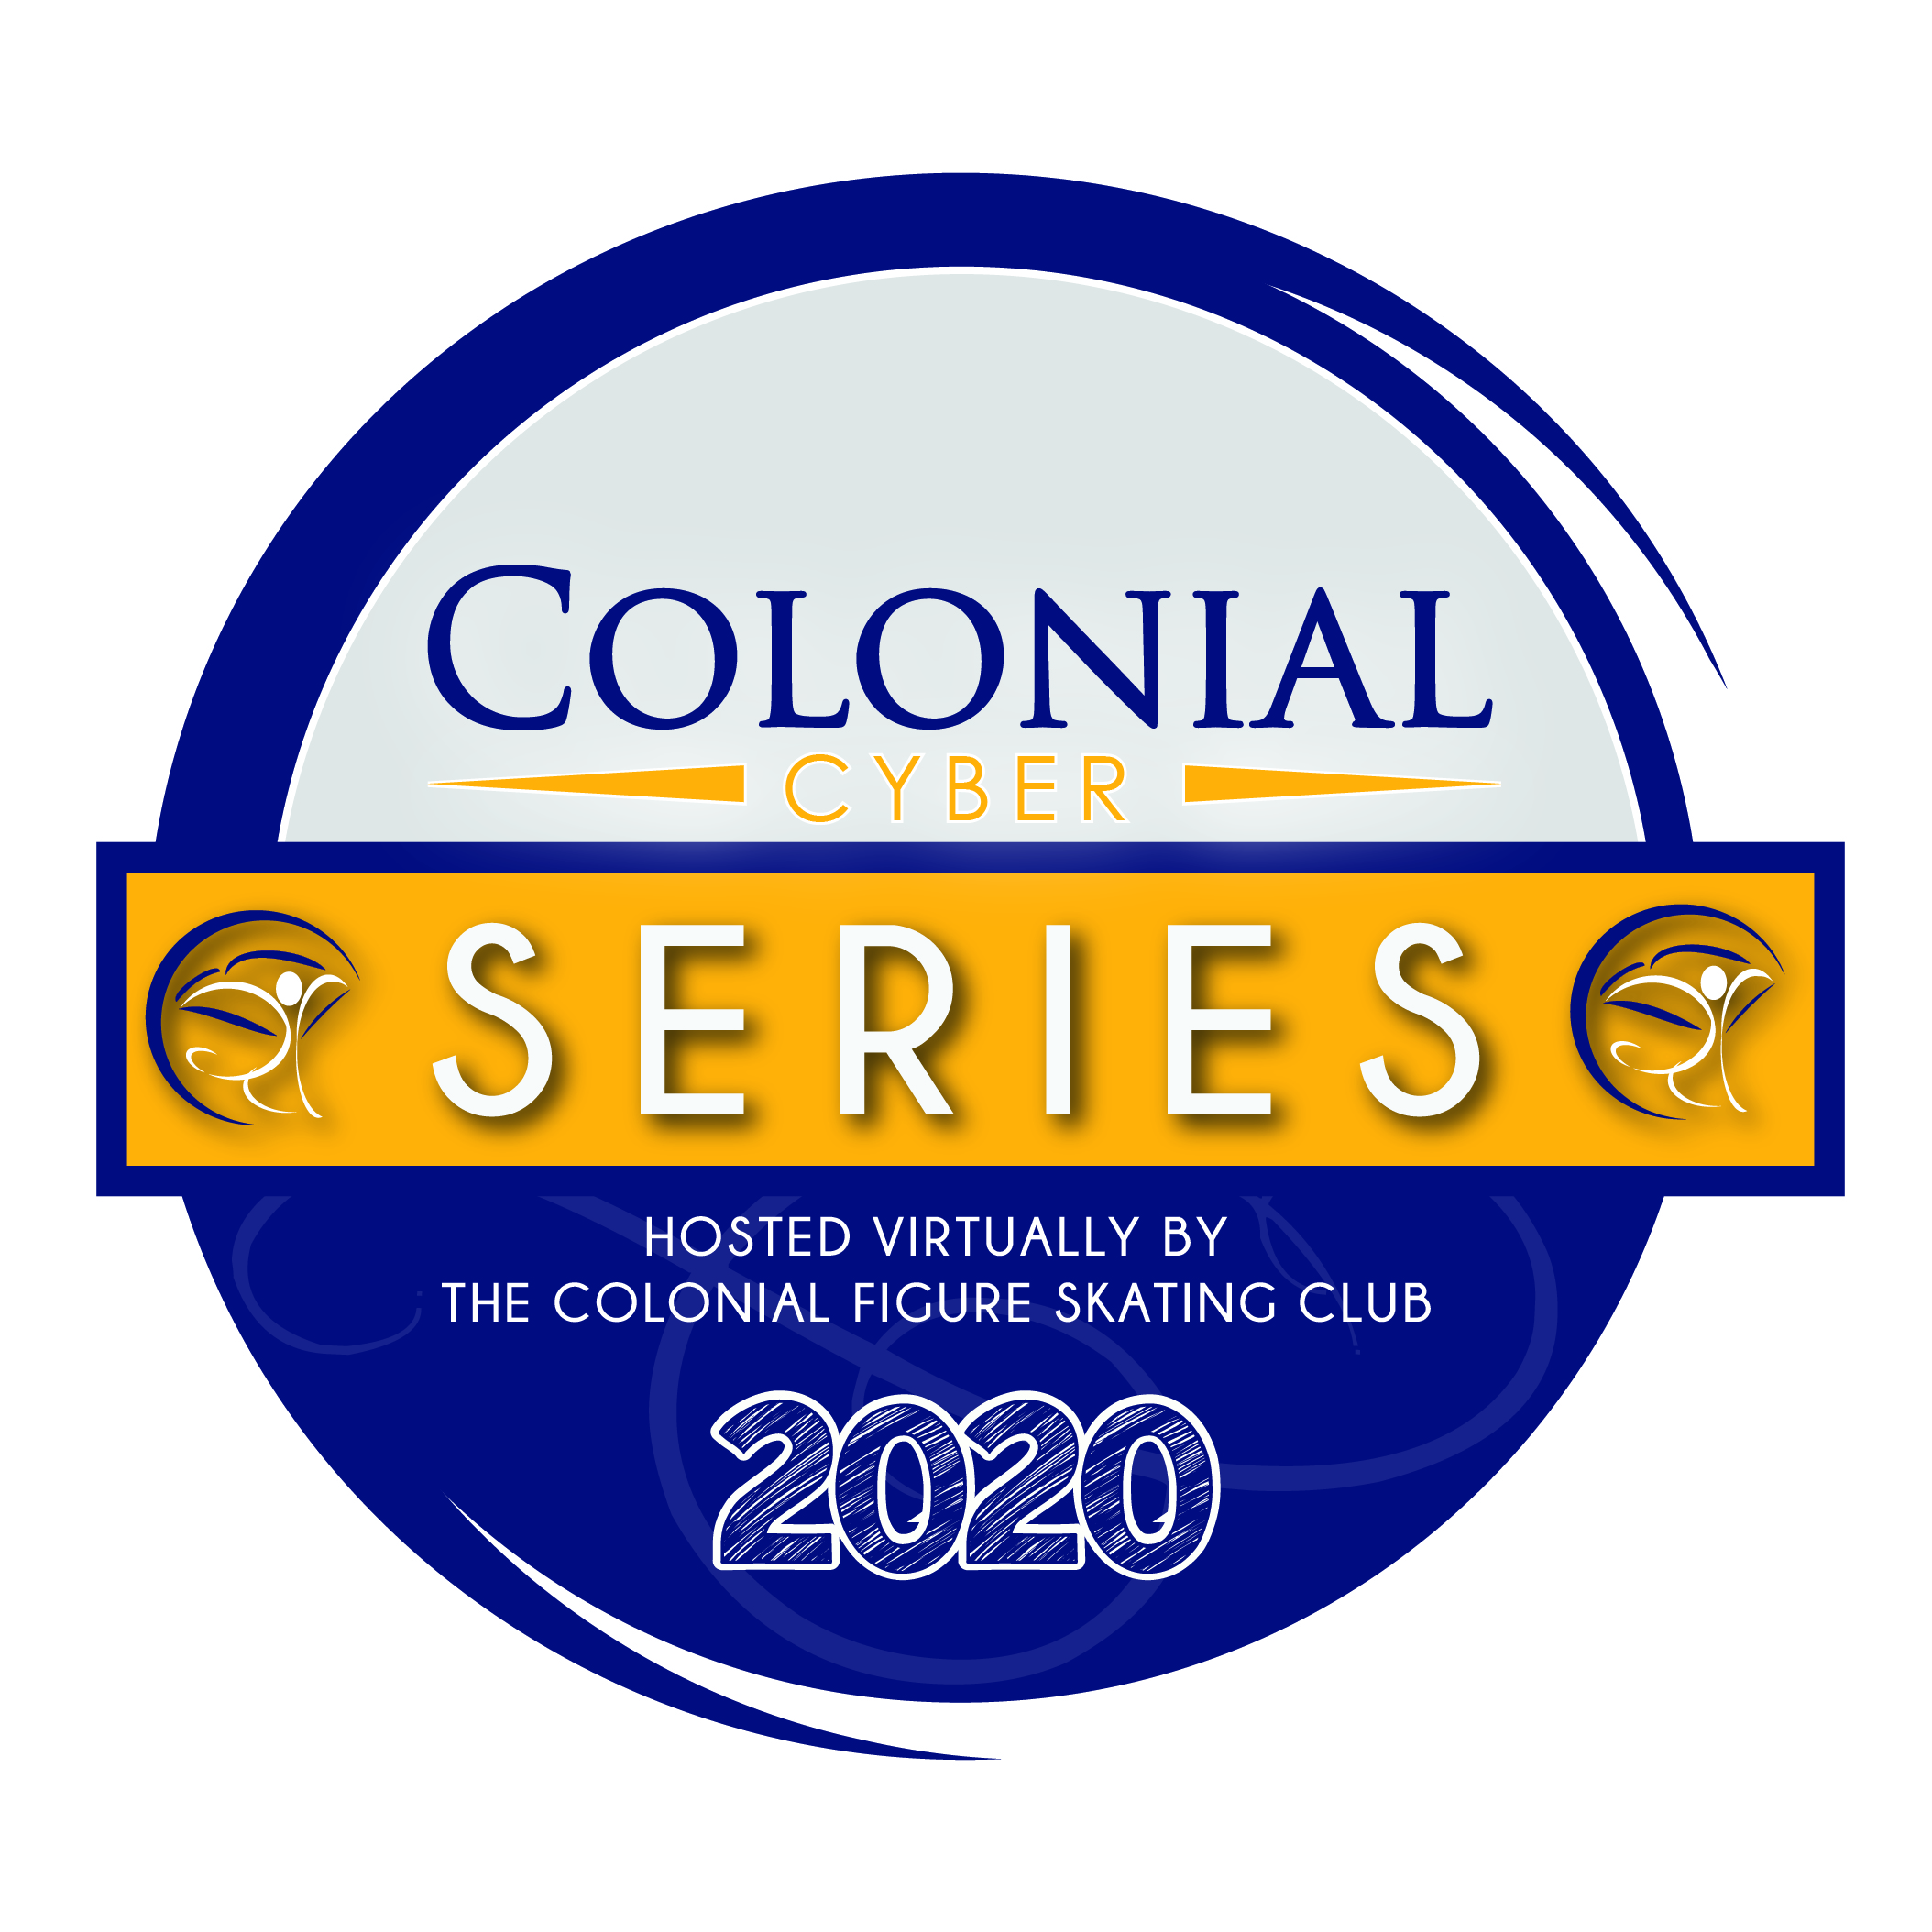 Colonial Cyber Series